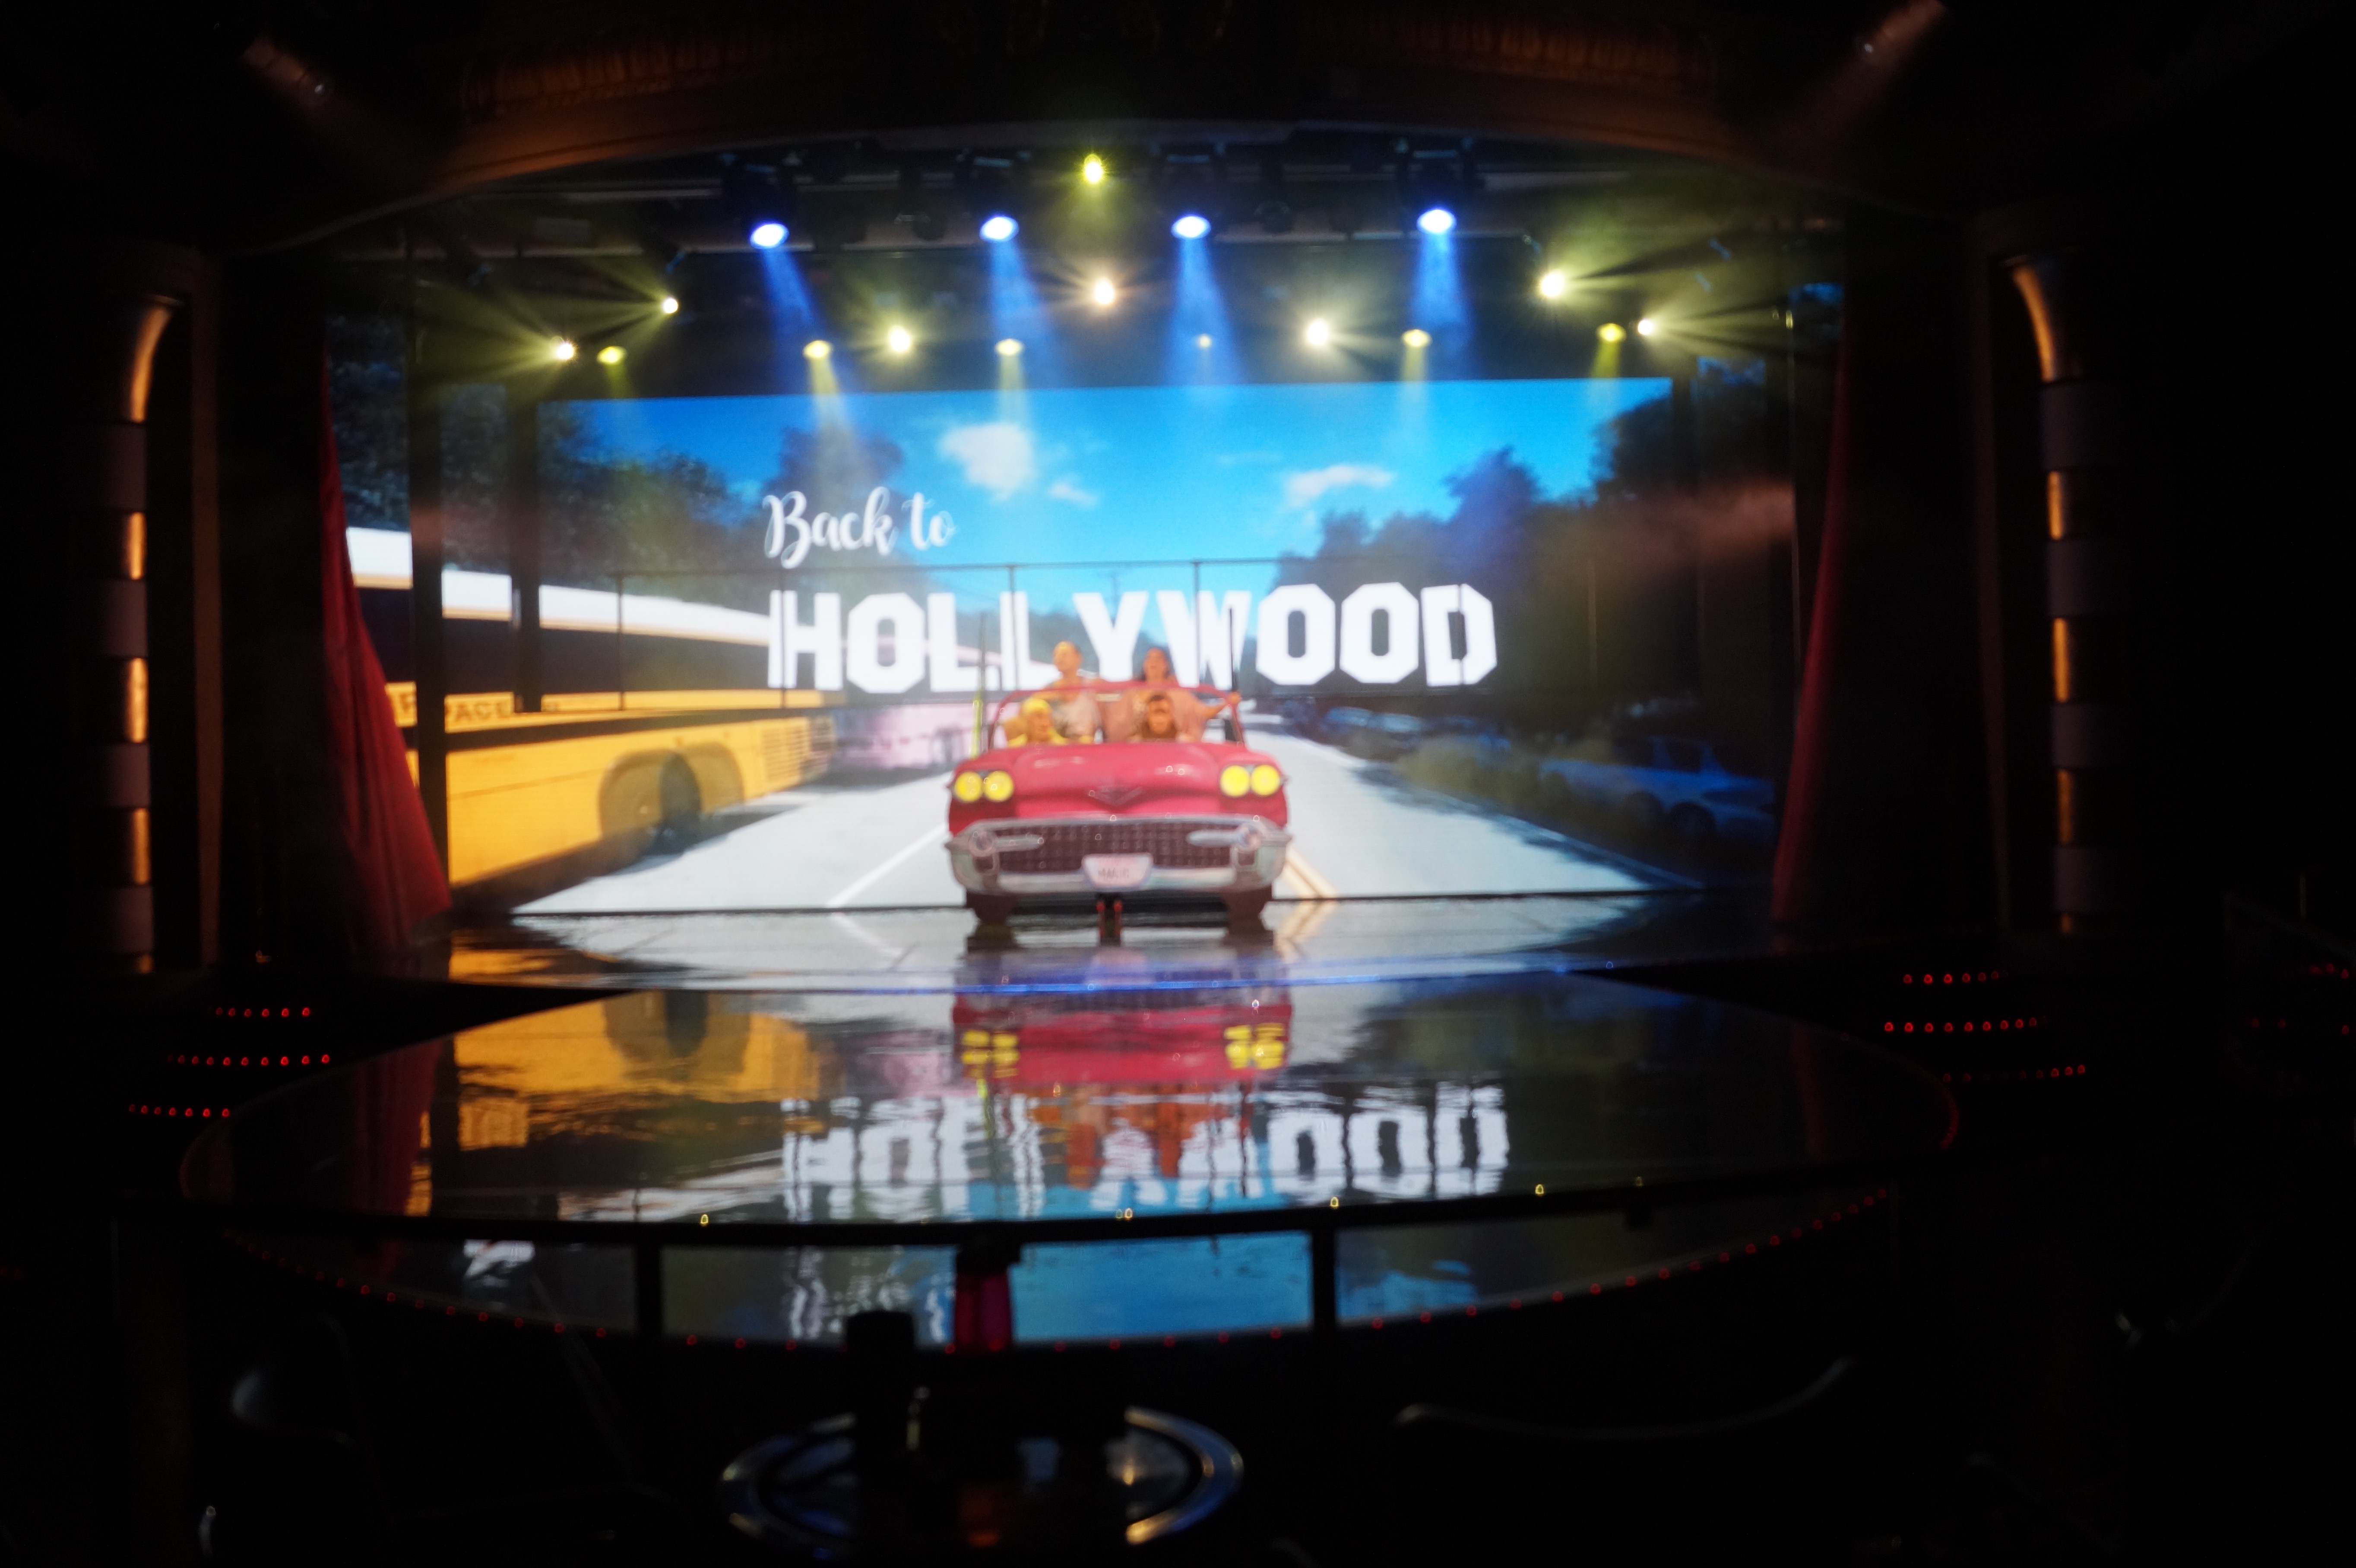 Back to Hollywood